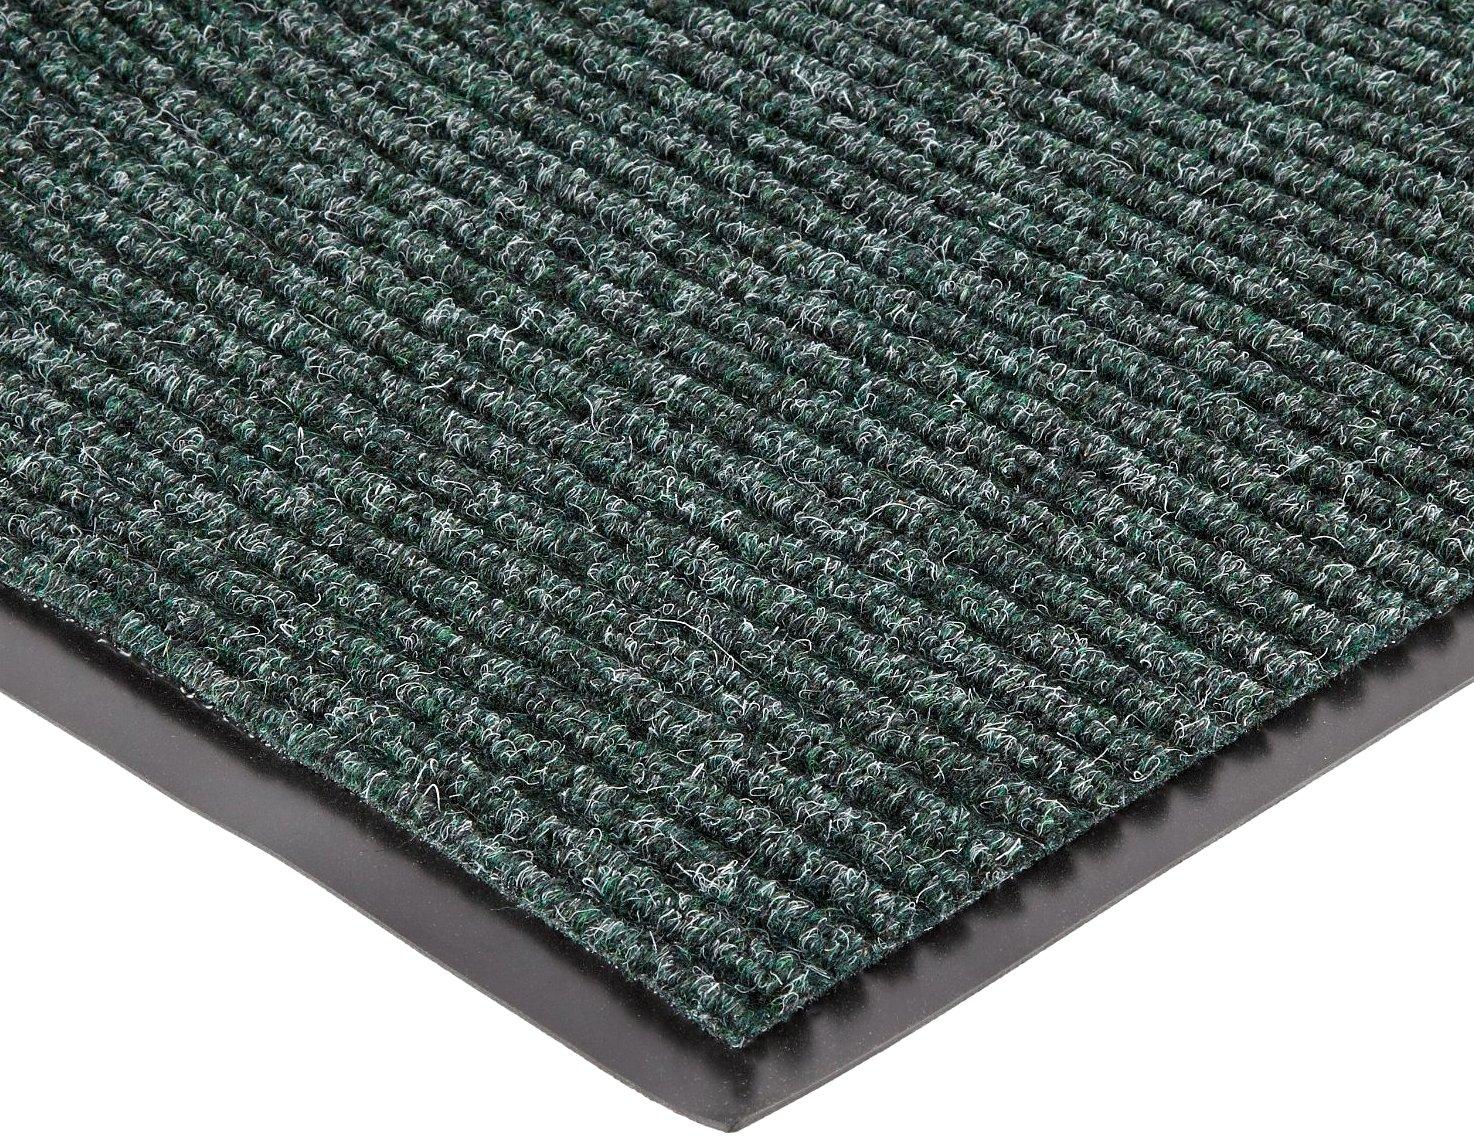 NoTrax 117 Heritage Rib Entrance Mat, for Lobbies and Indoor Entranceways, 3' Width x 10' Length x 3/8'' Thickness, Hunter Green